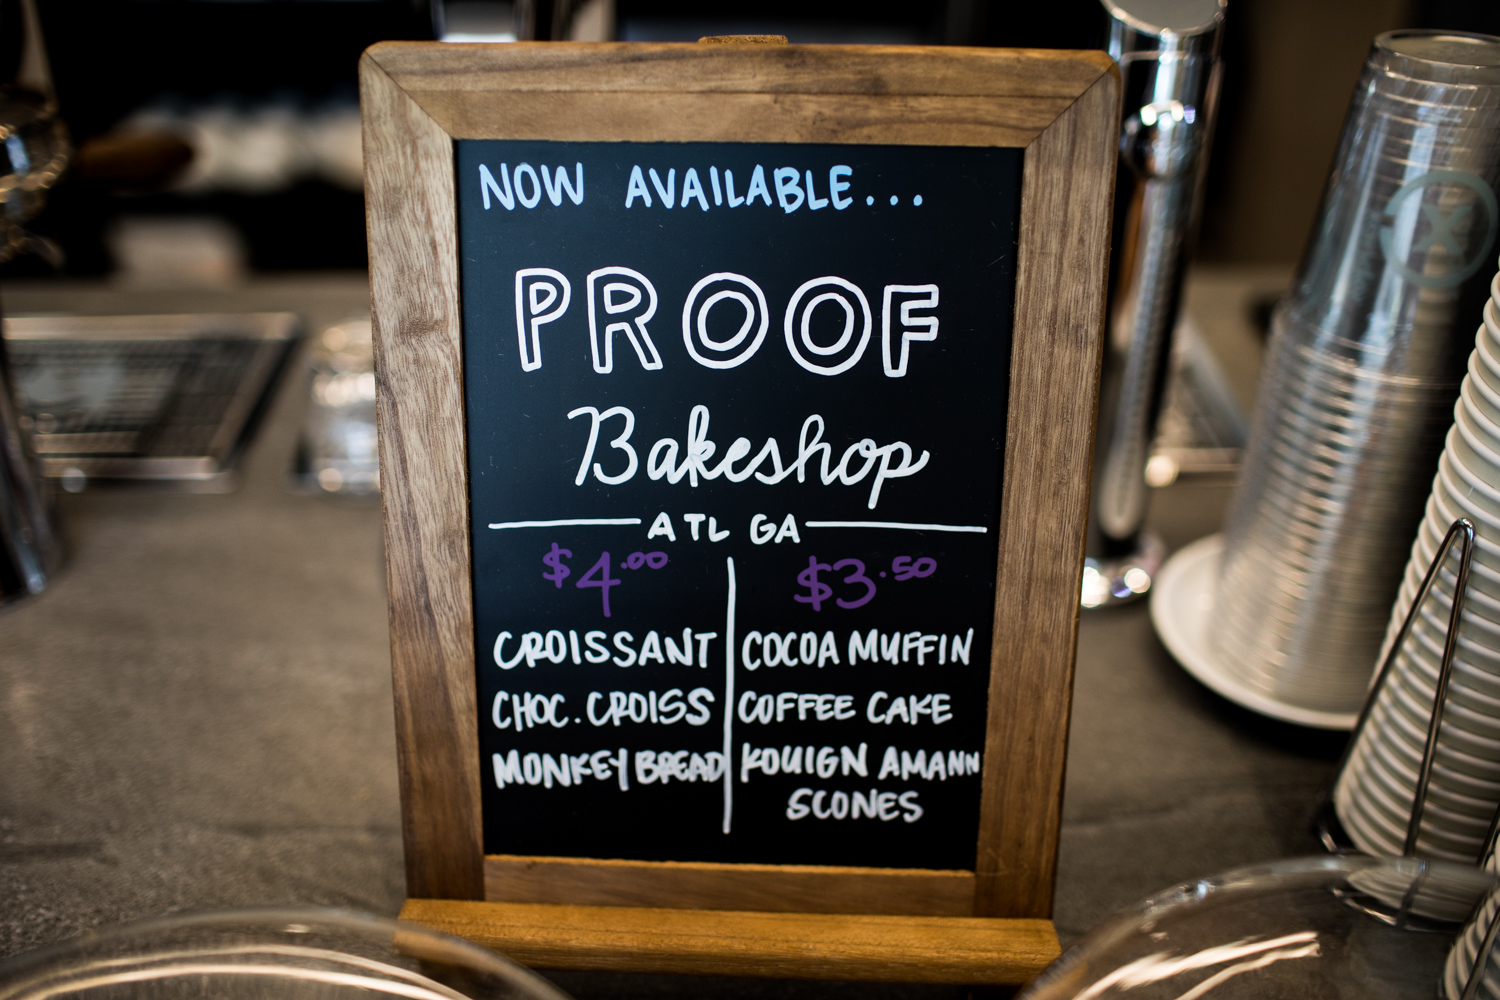 Pastries/croissants are in partnership with Atlanta's Proof Bakeshop.